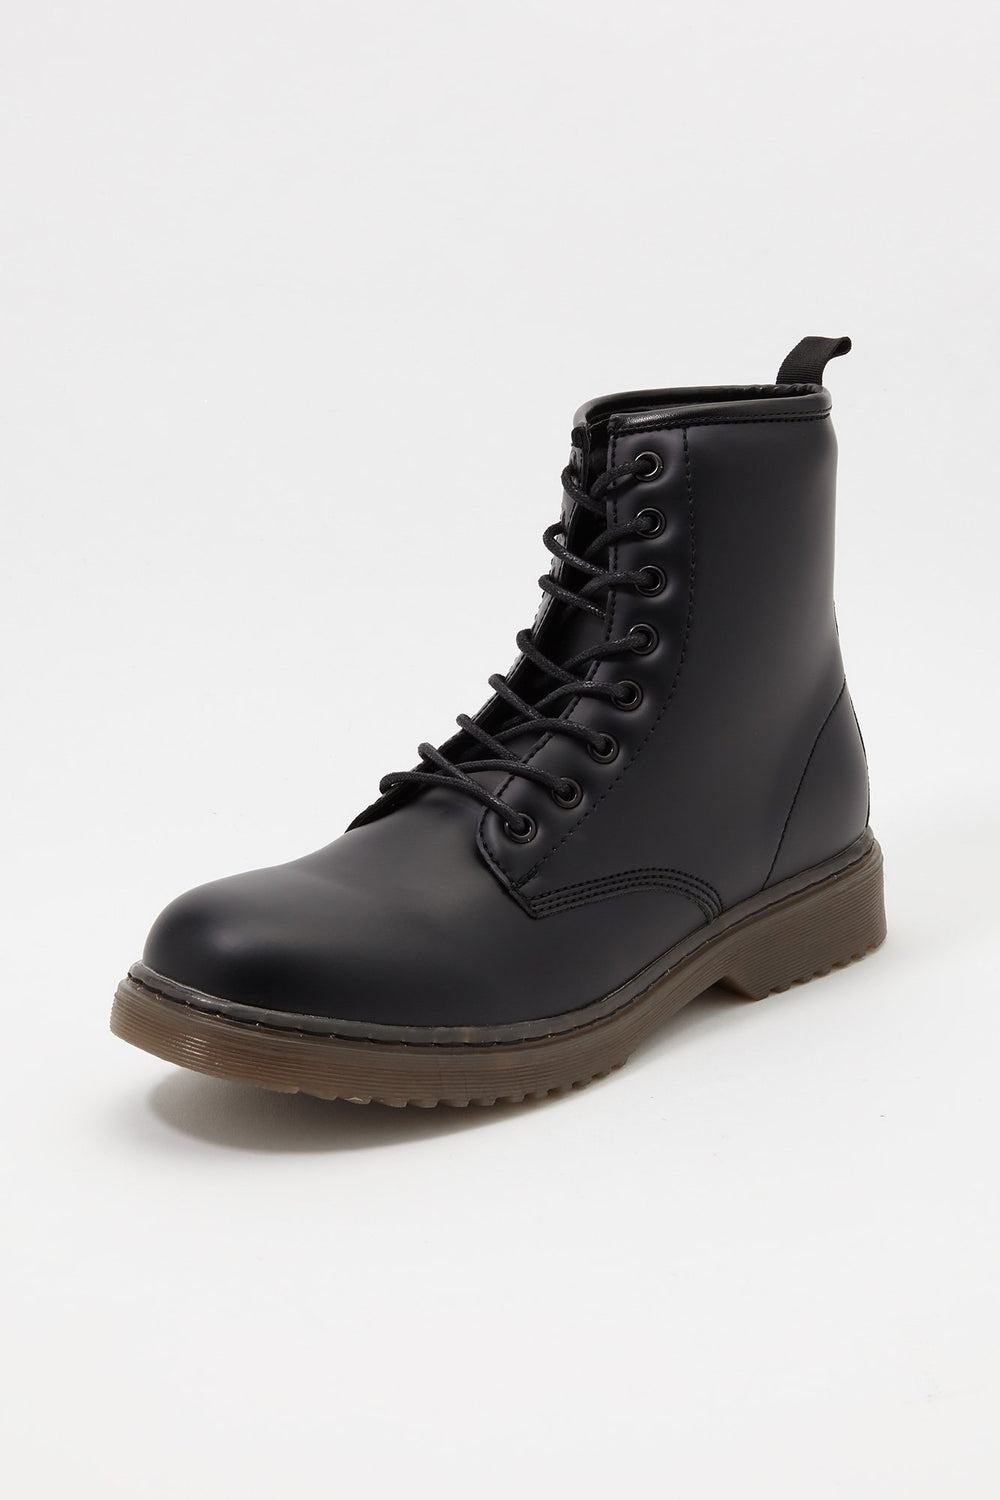 Storm Mountain Mens Casual Lace-Up Boots Black